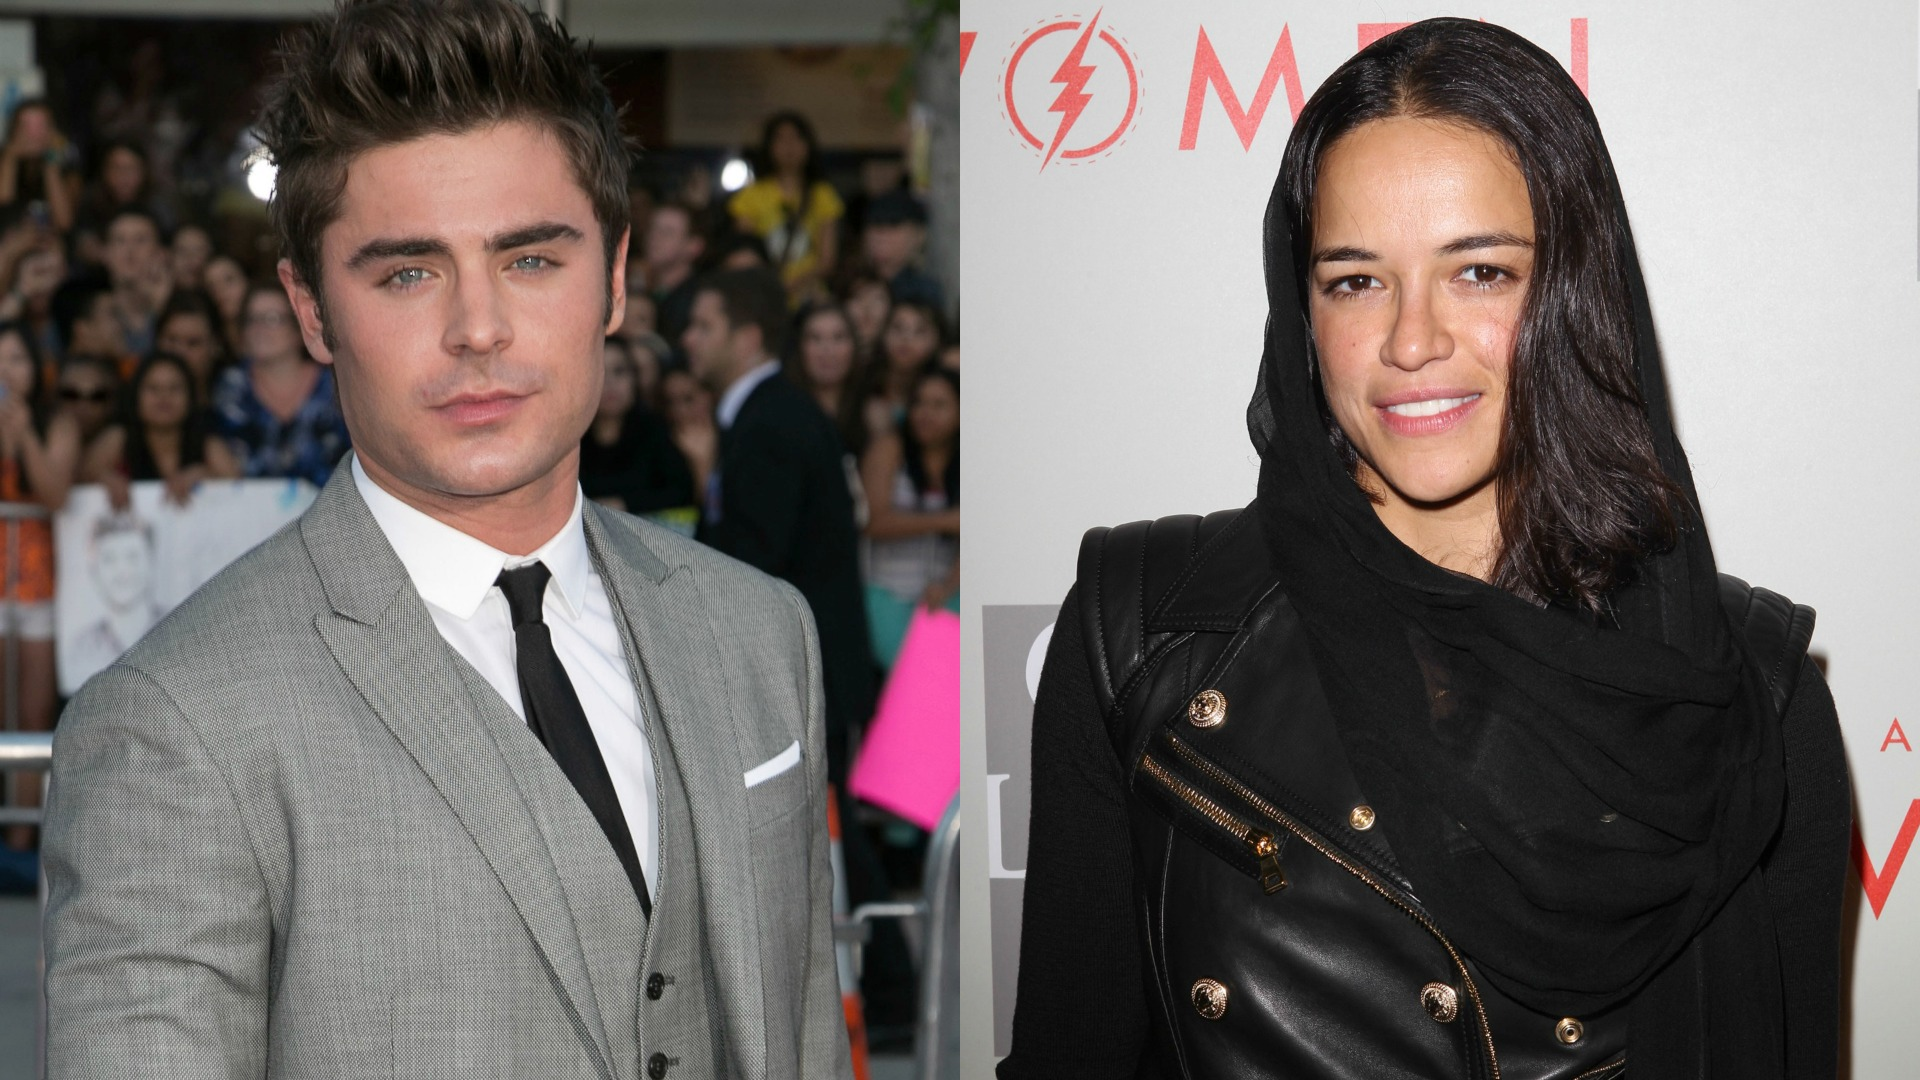 Zac Efron and Michelle Rodriguez caught kissing